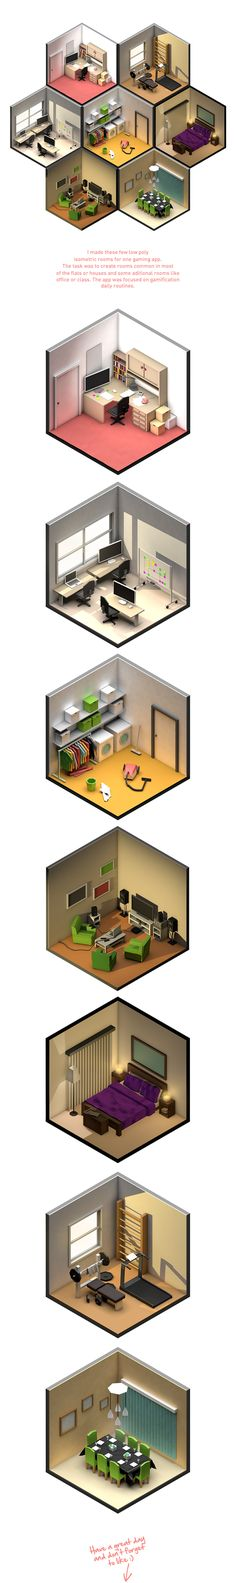 Low Poly rooms by Petr Kollarcik, via Behance (Can be used to teach the rooms of a house and their furniture in Spanish)